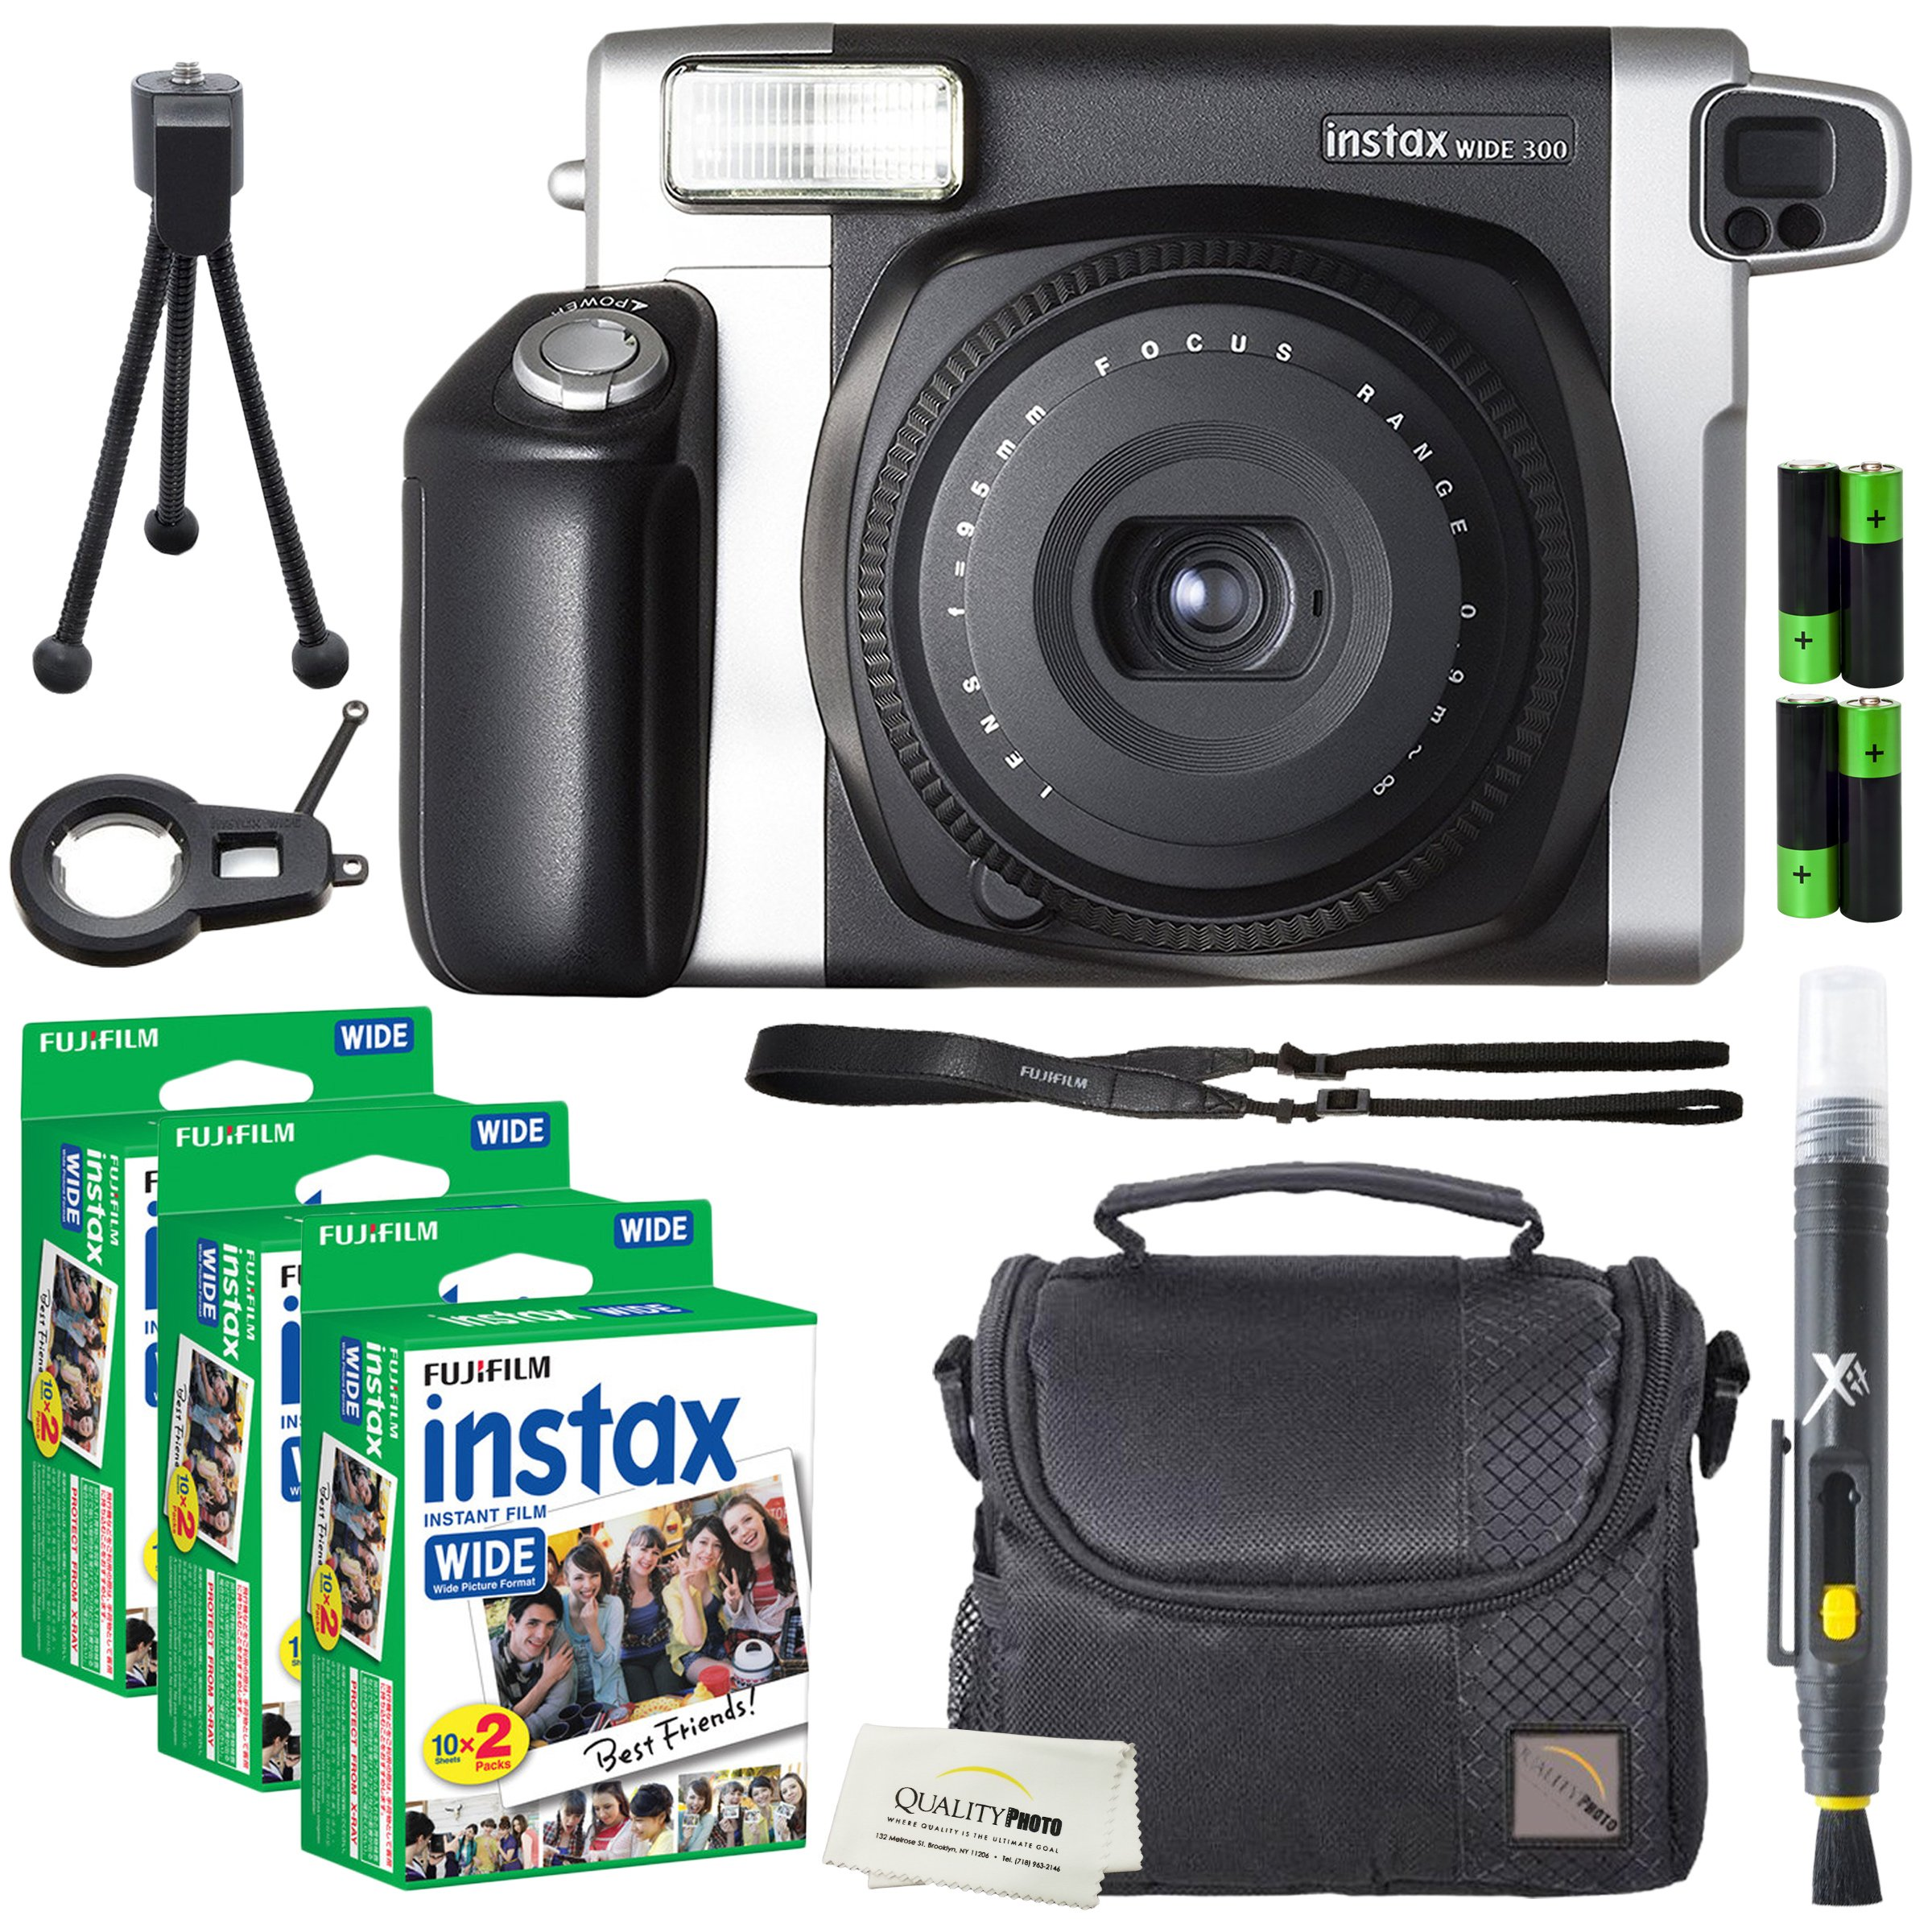 Fujifilm Instax Wide 300 Instant Film Camera + instax Wide Instant Film, 60 Sheets + Extra Accessories by Fujifilm